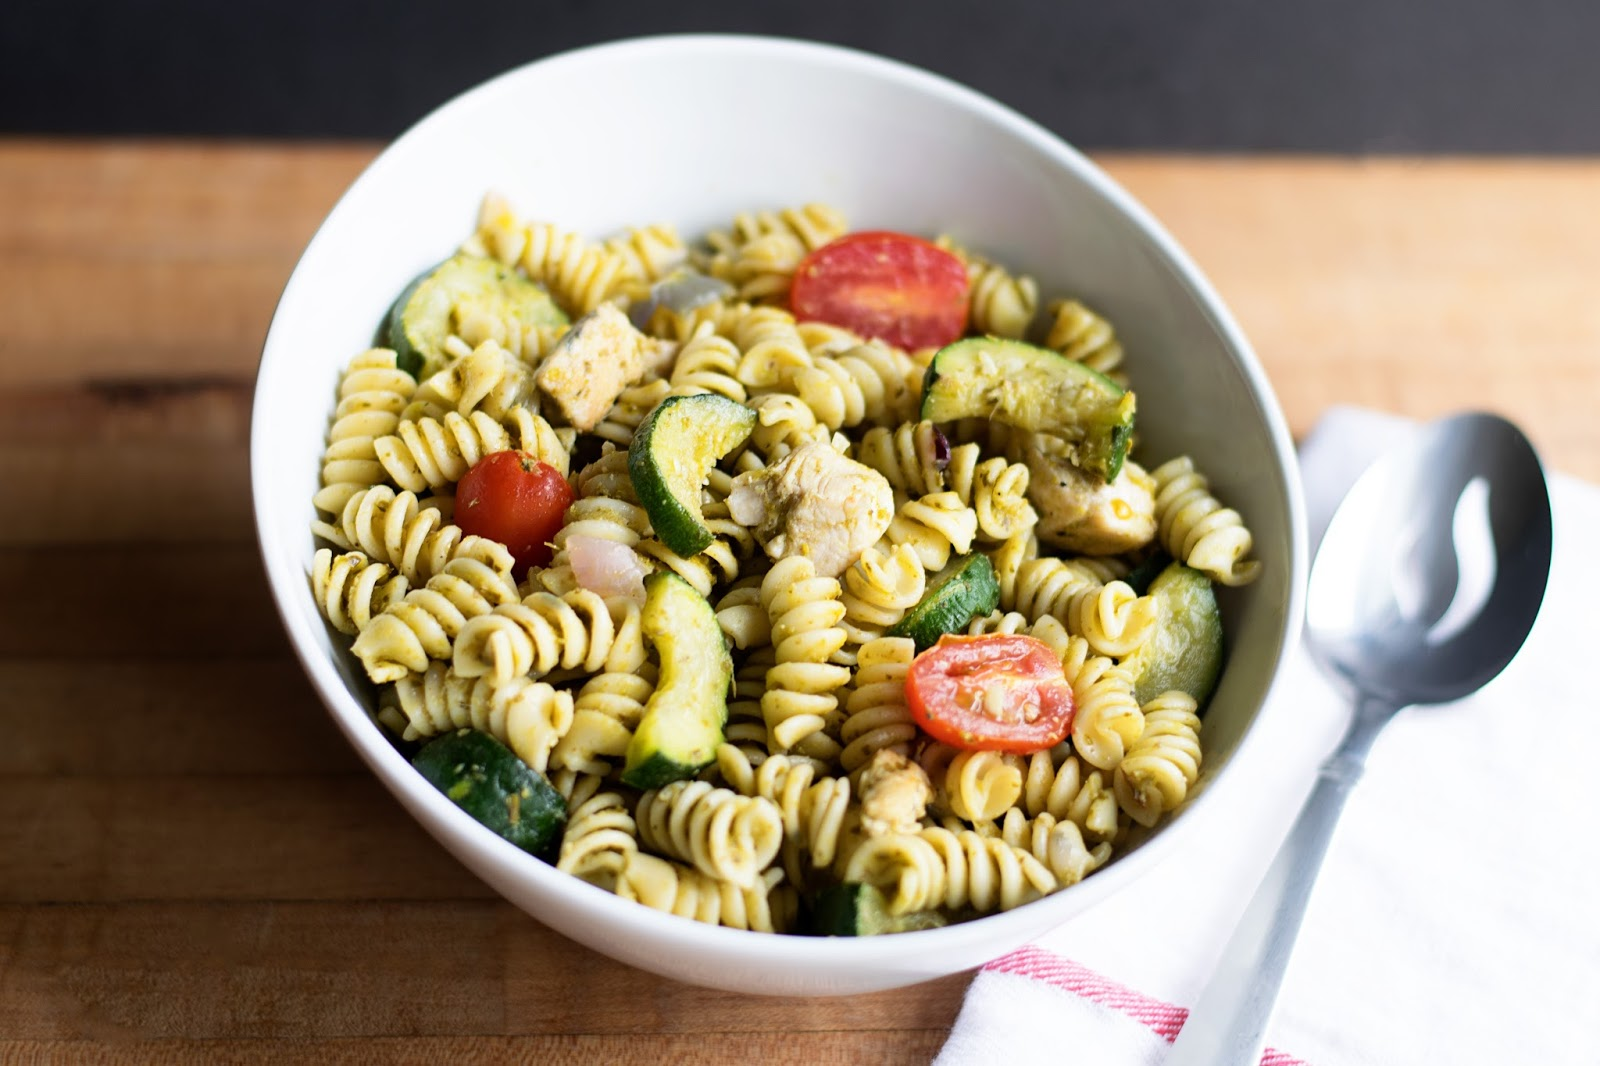 The finished Chicken Pesto Pasta Salad, in a white bowl with a serving ...